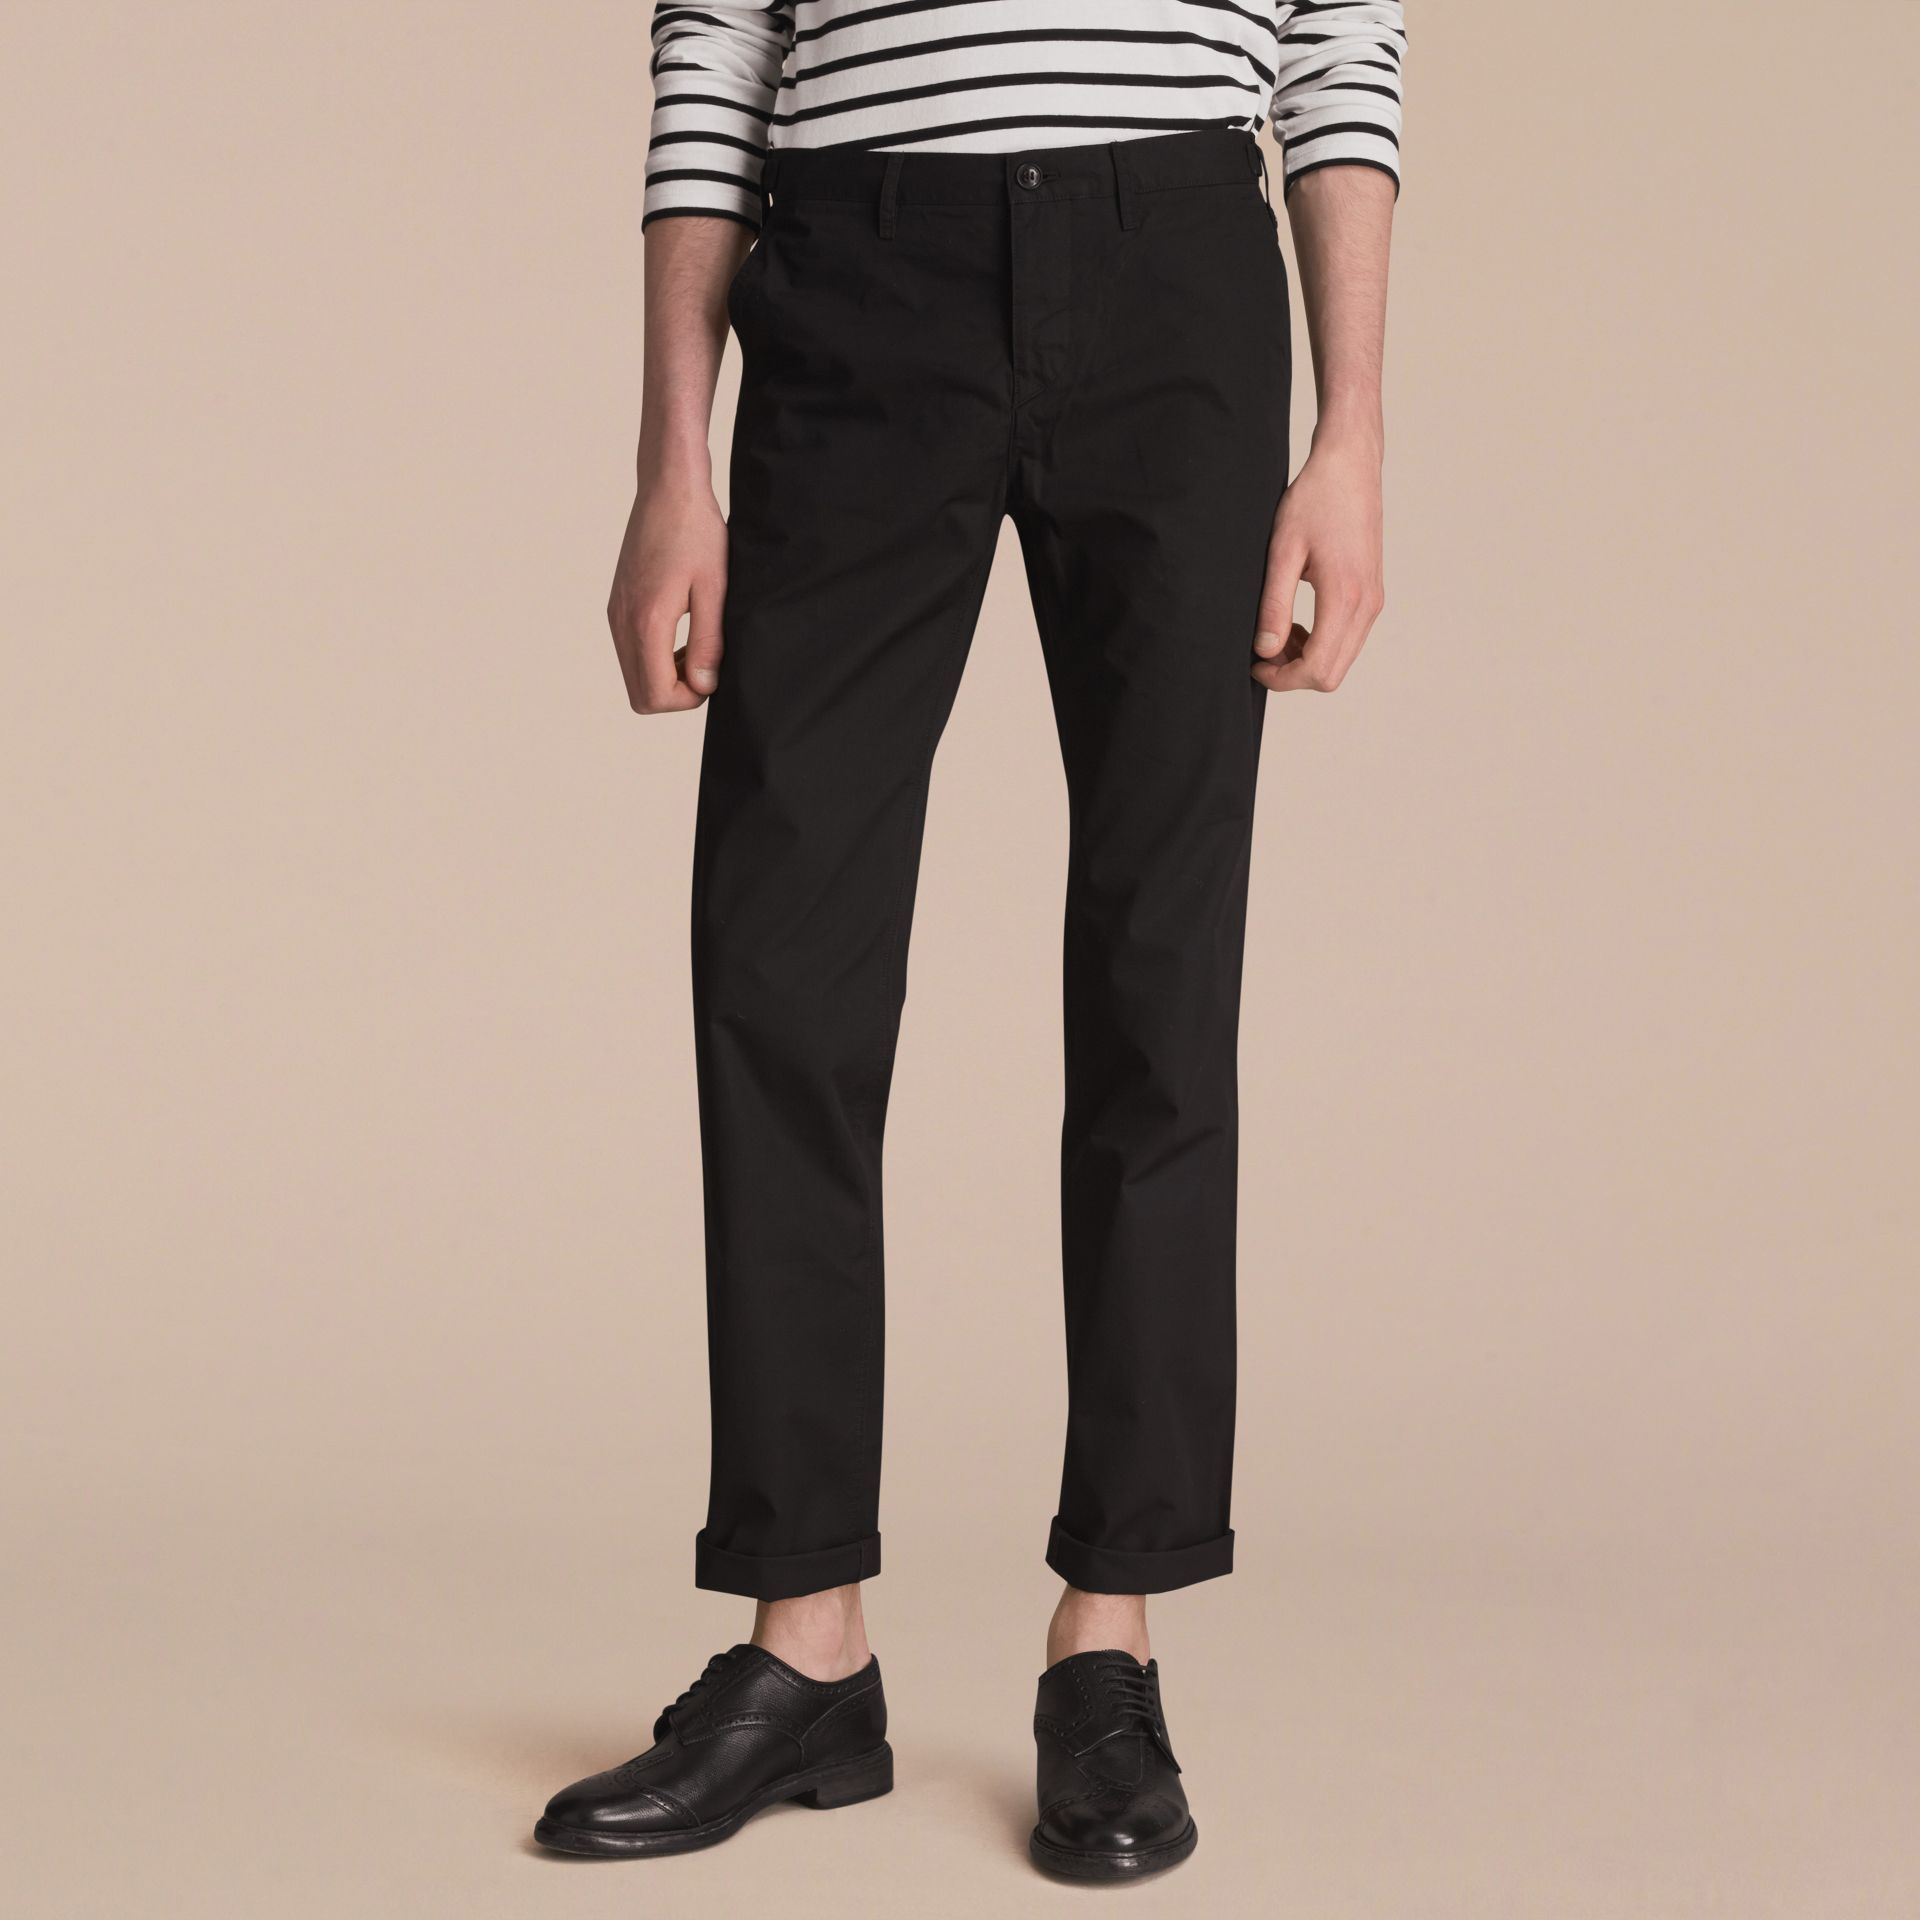 Pantalon chino de coupe droite en coton (Noir) - Homme | Burberry - photo de la galerie 6